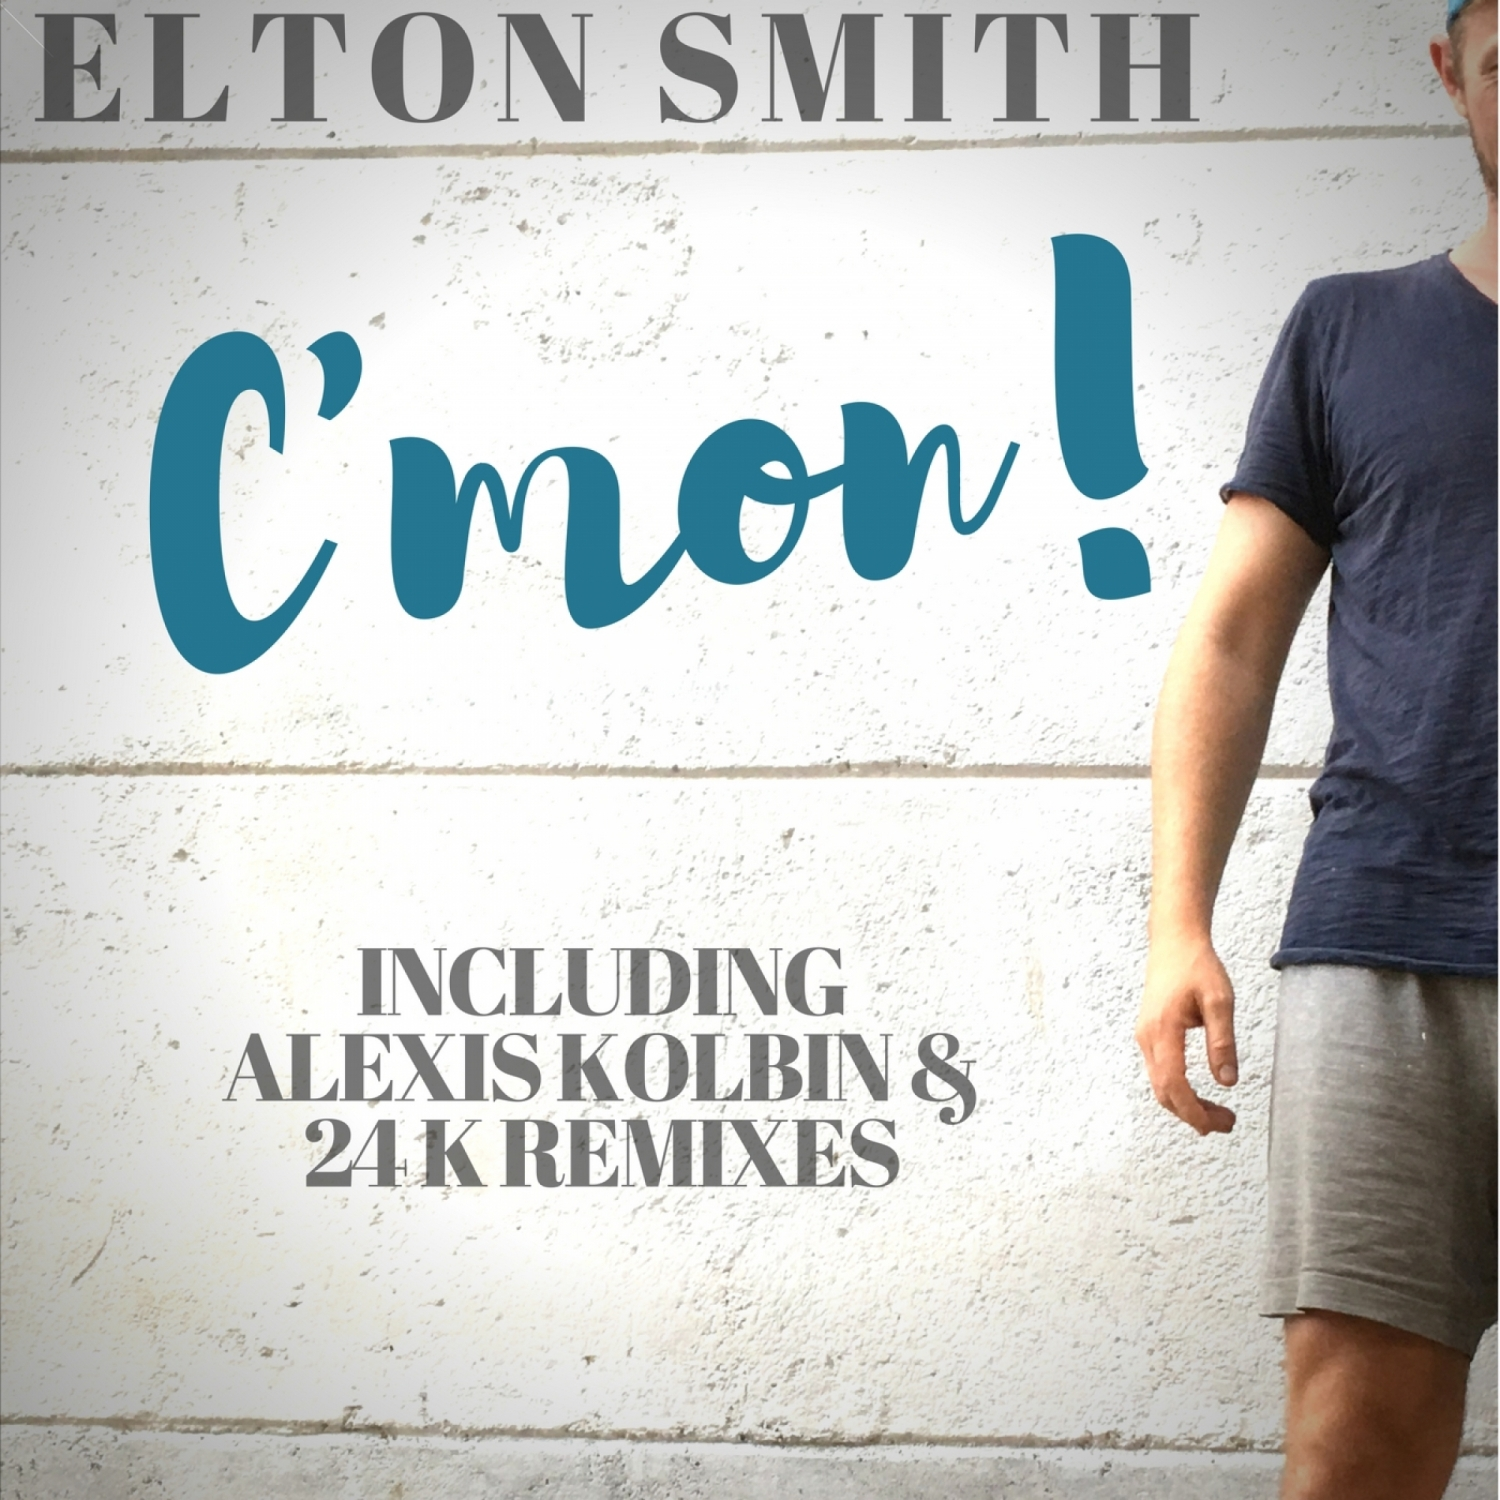 Elton Smith  - C\'mon! (Alexis Kolbin Remix)